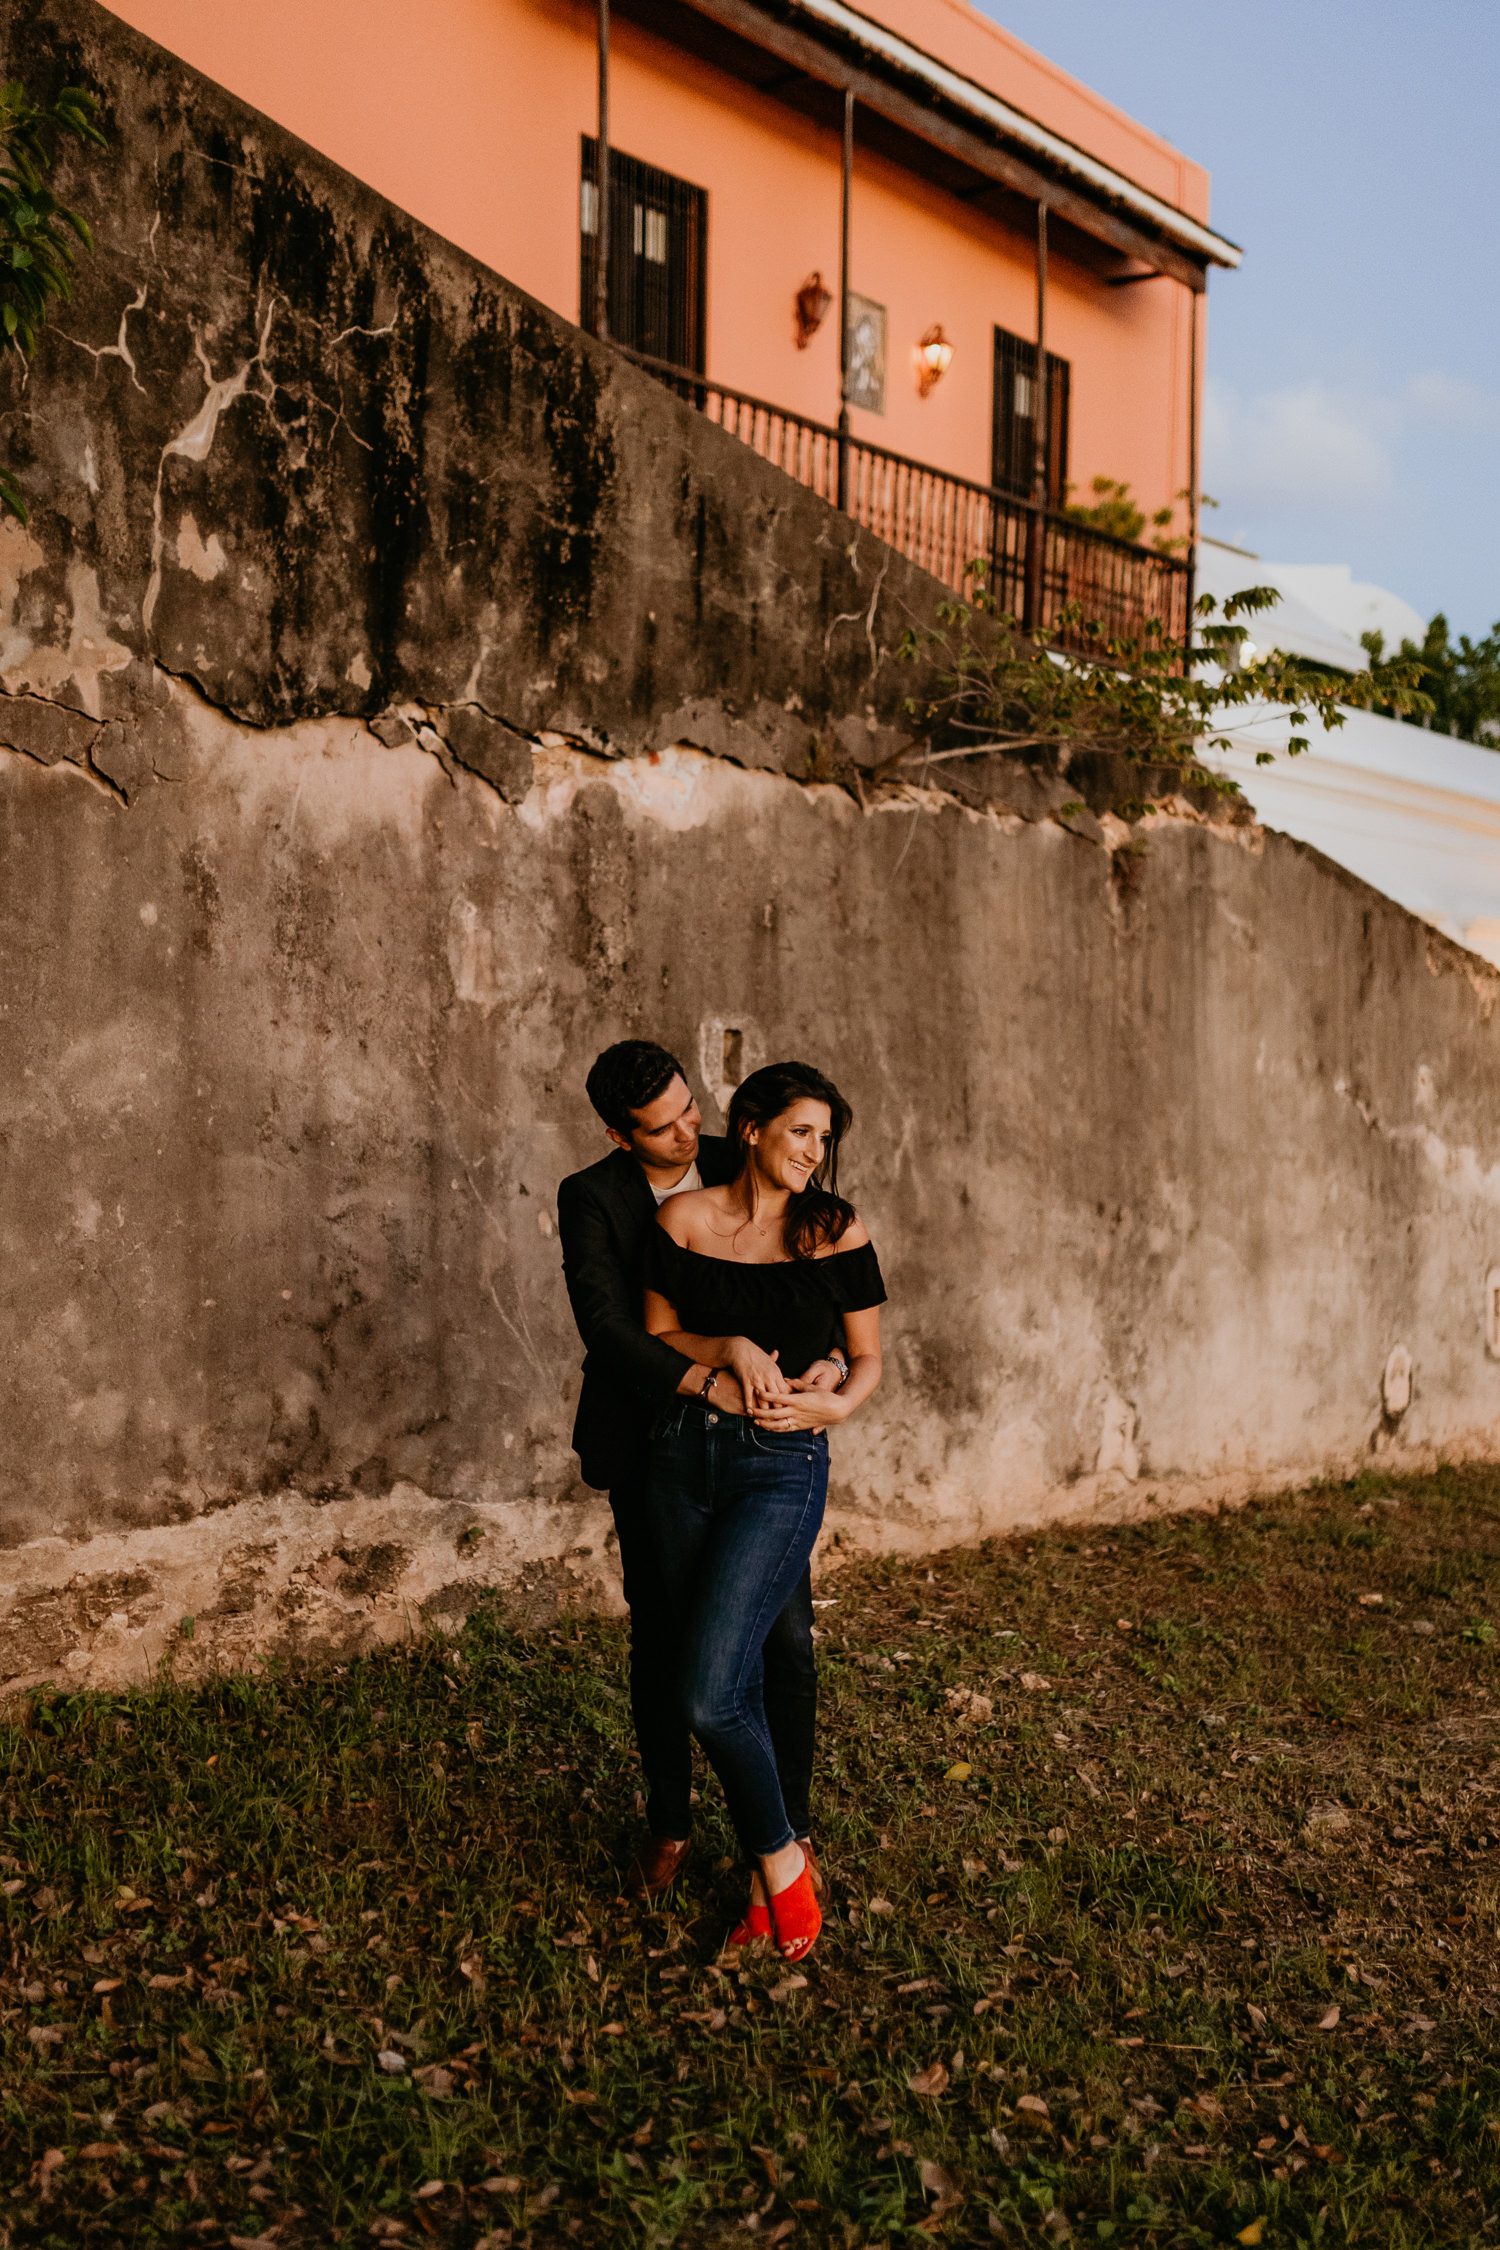 man hugging woman from behind in front of stone wall during sunset